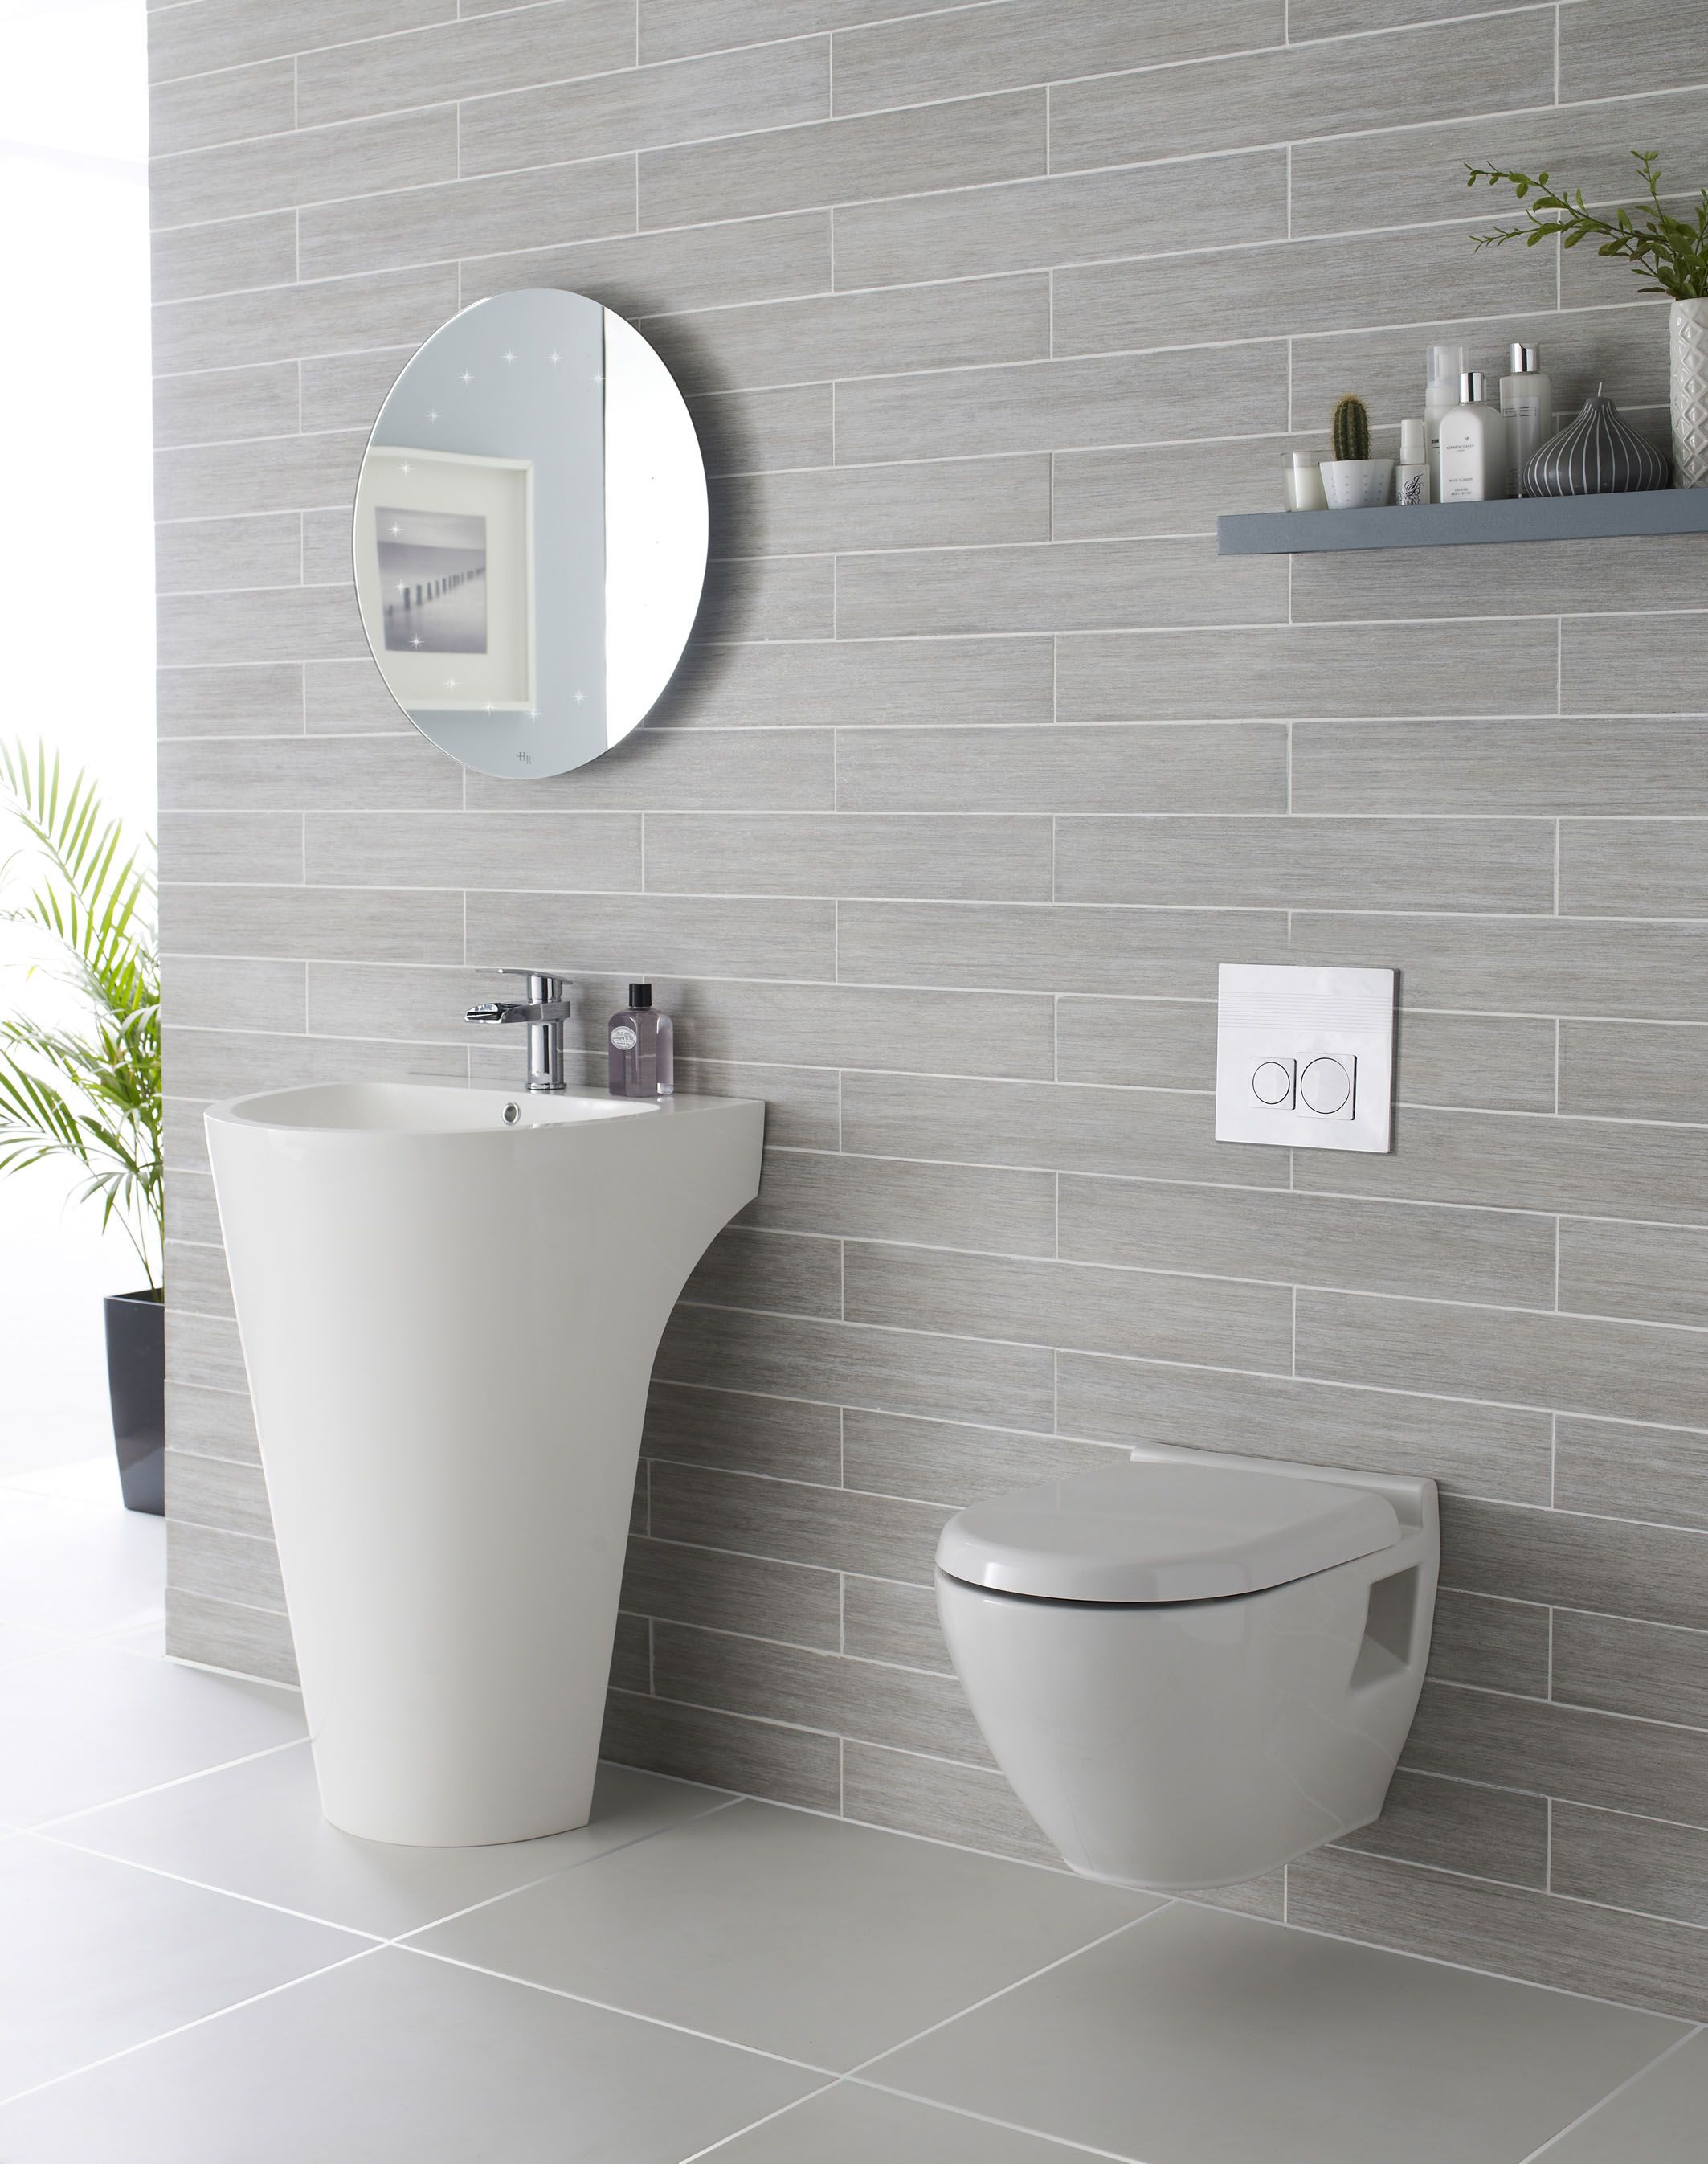 Bathroom with vanity bidet and toilet bathroom style bathroom tiles - Grey Tile Bathroom Complete With Lavish Basin At Least 2 Shades Of Grey Here